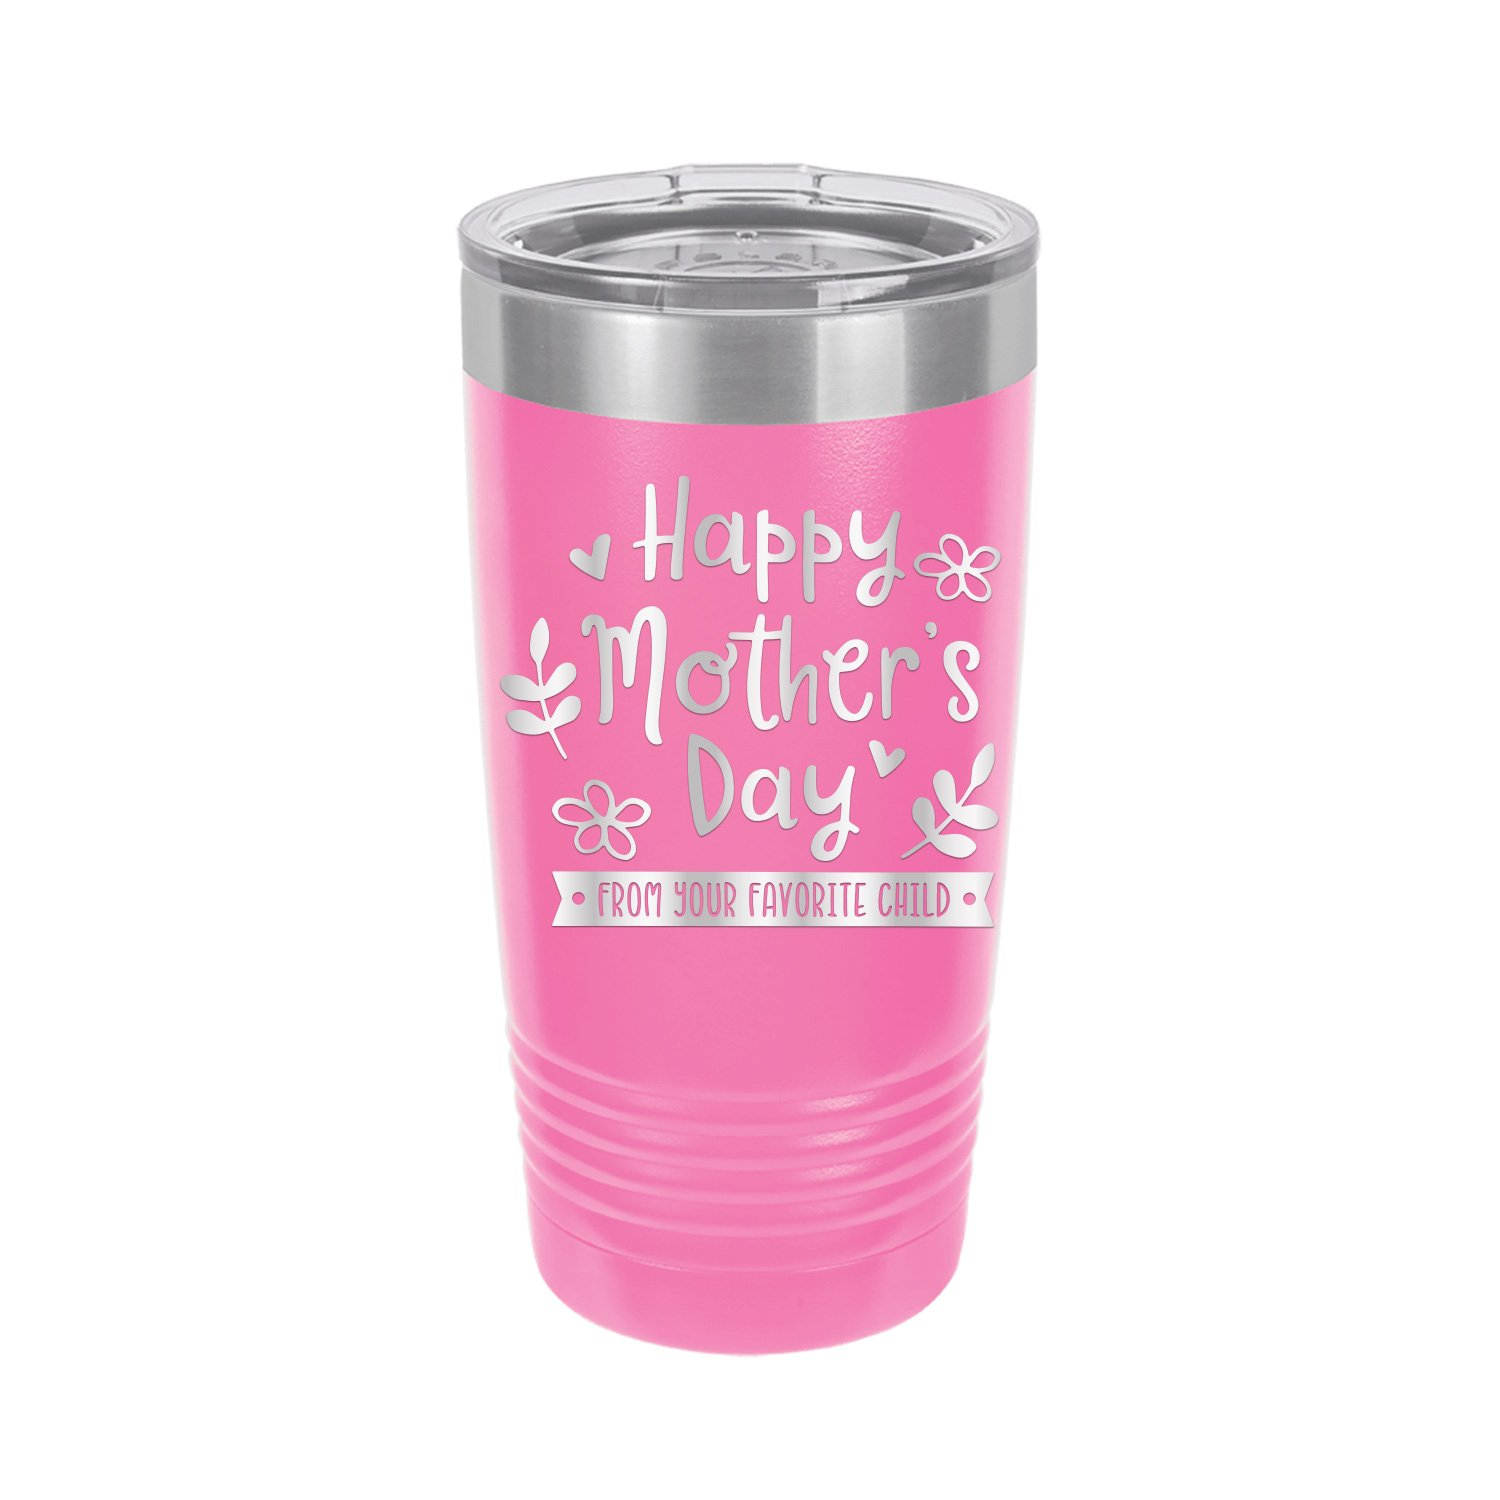 Gift For First Mom Gift For Her Personalized First Mother/'s Day 2021 Travel Coffee Mug Tumbler 20oz Available In Any Color